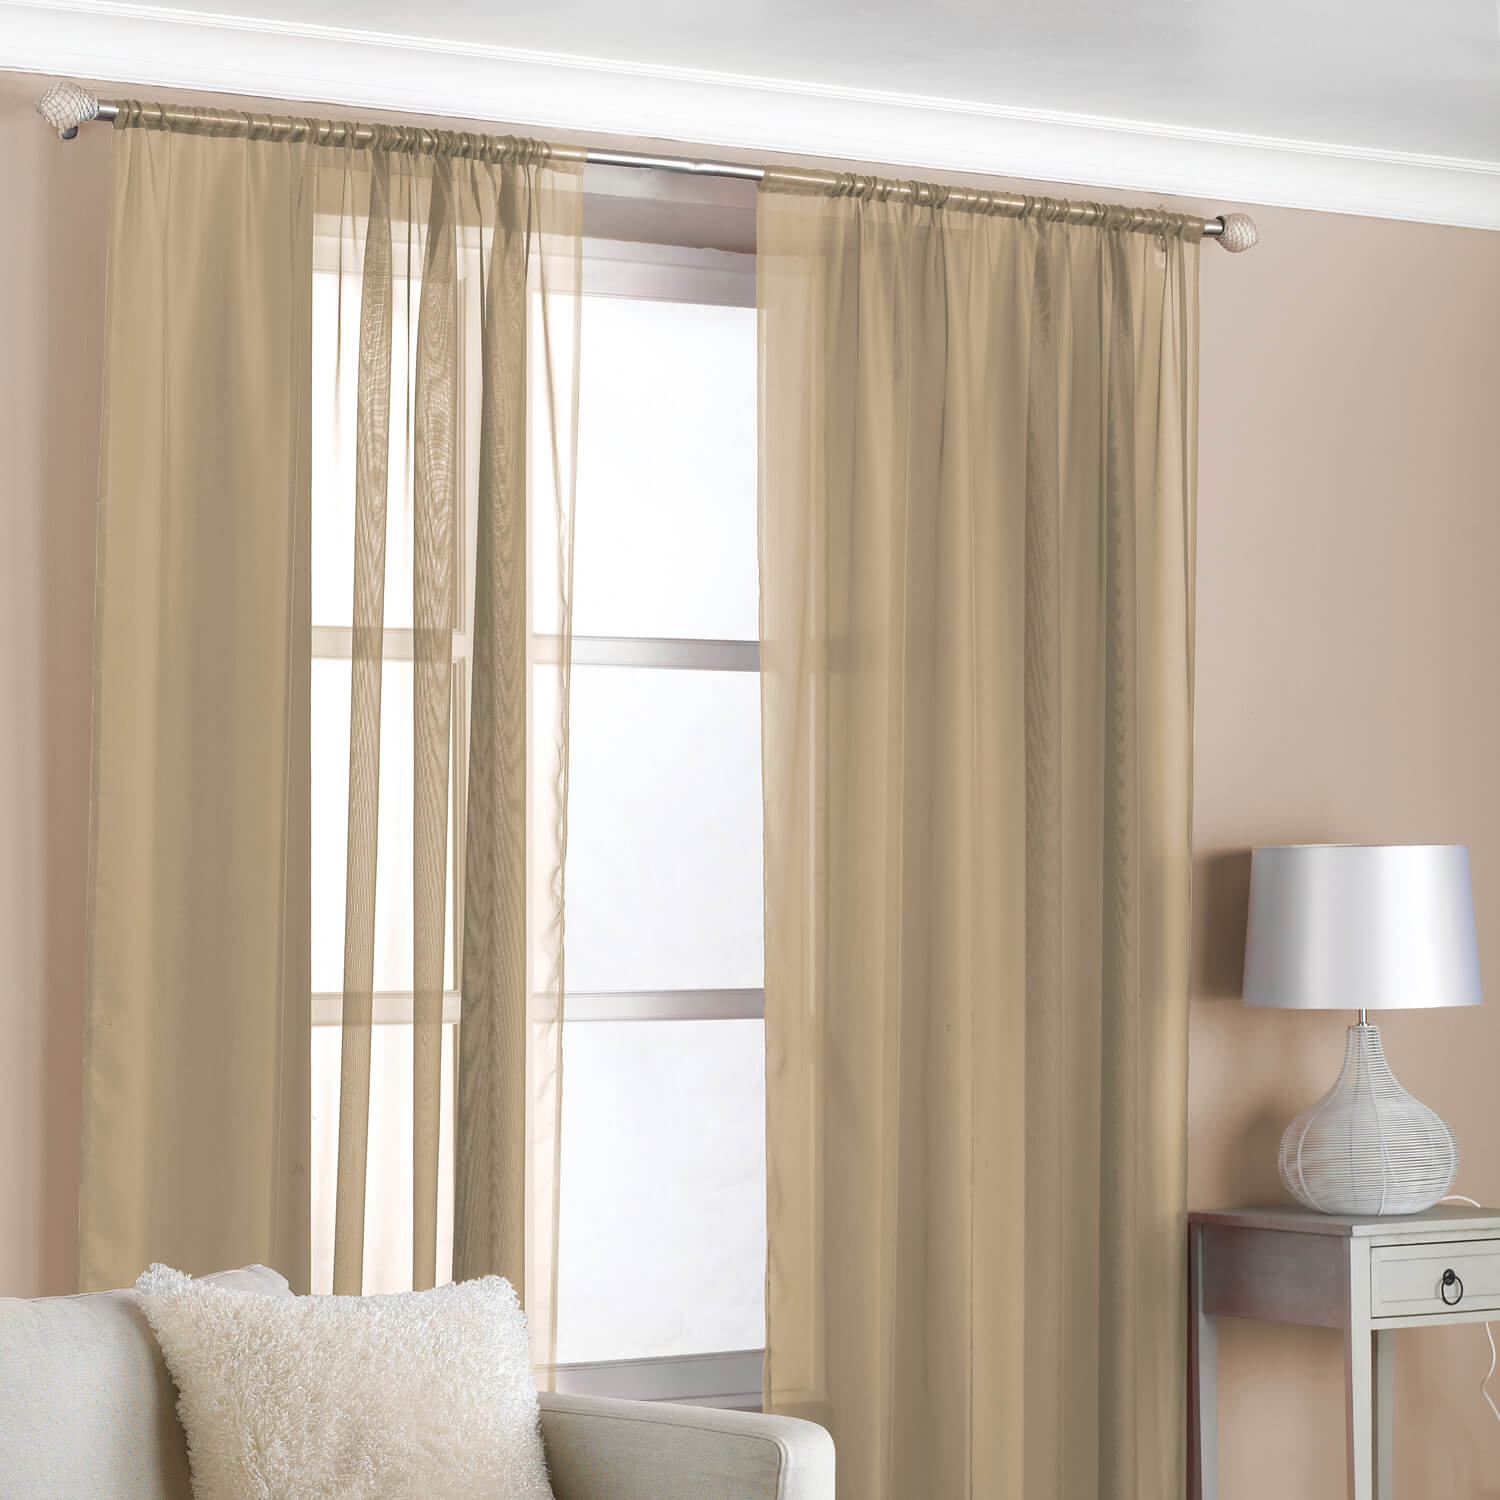 com ip panel sheer curtains marjorie curtain voile mainstays walmart